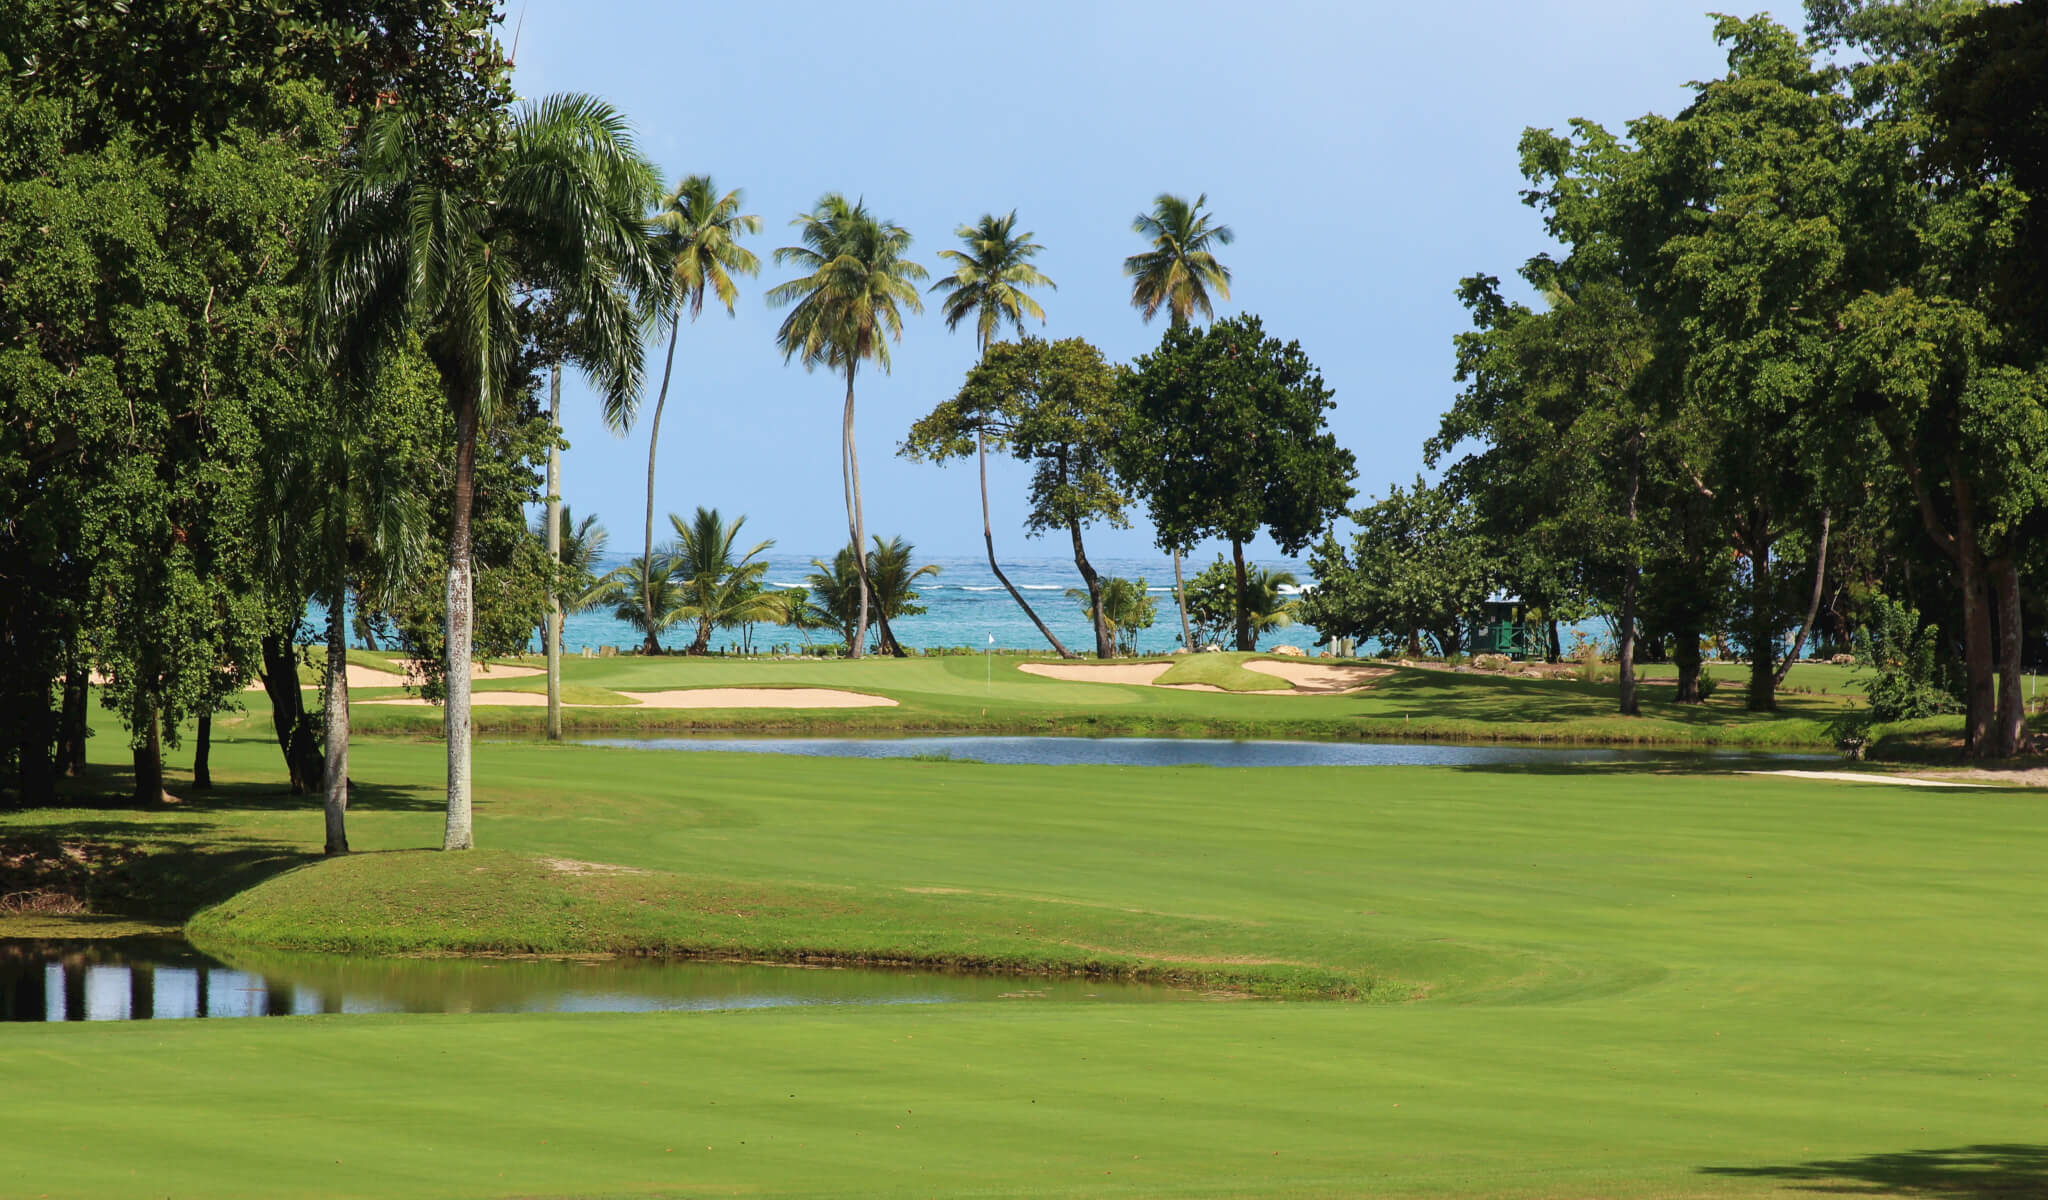 The investment in The New Golf Course Las Terrenas Samana Dominican Republic will involve not one but two 18 hole courses and a 9 hole course along with Golf shop and Golf pros.